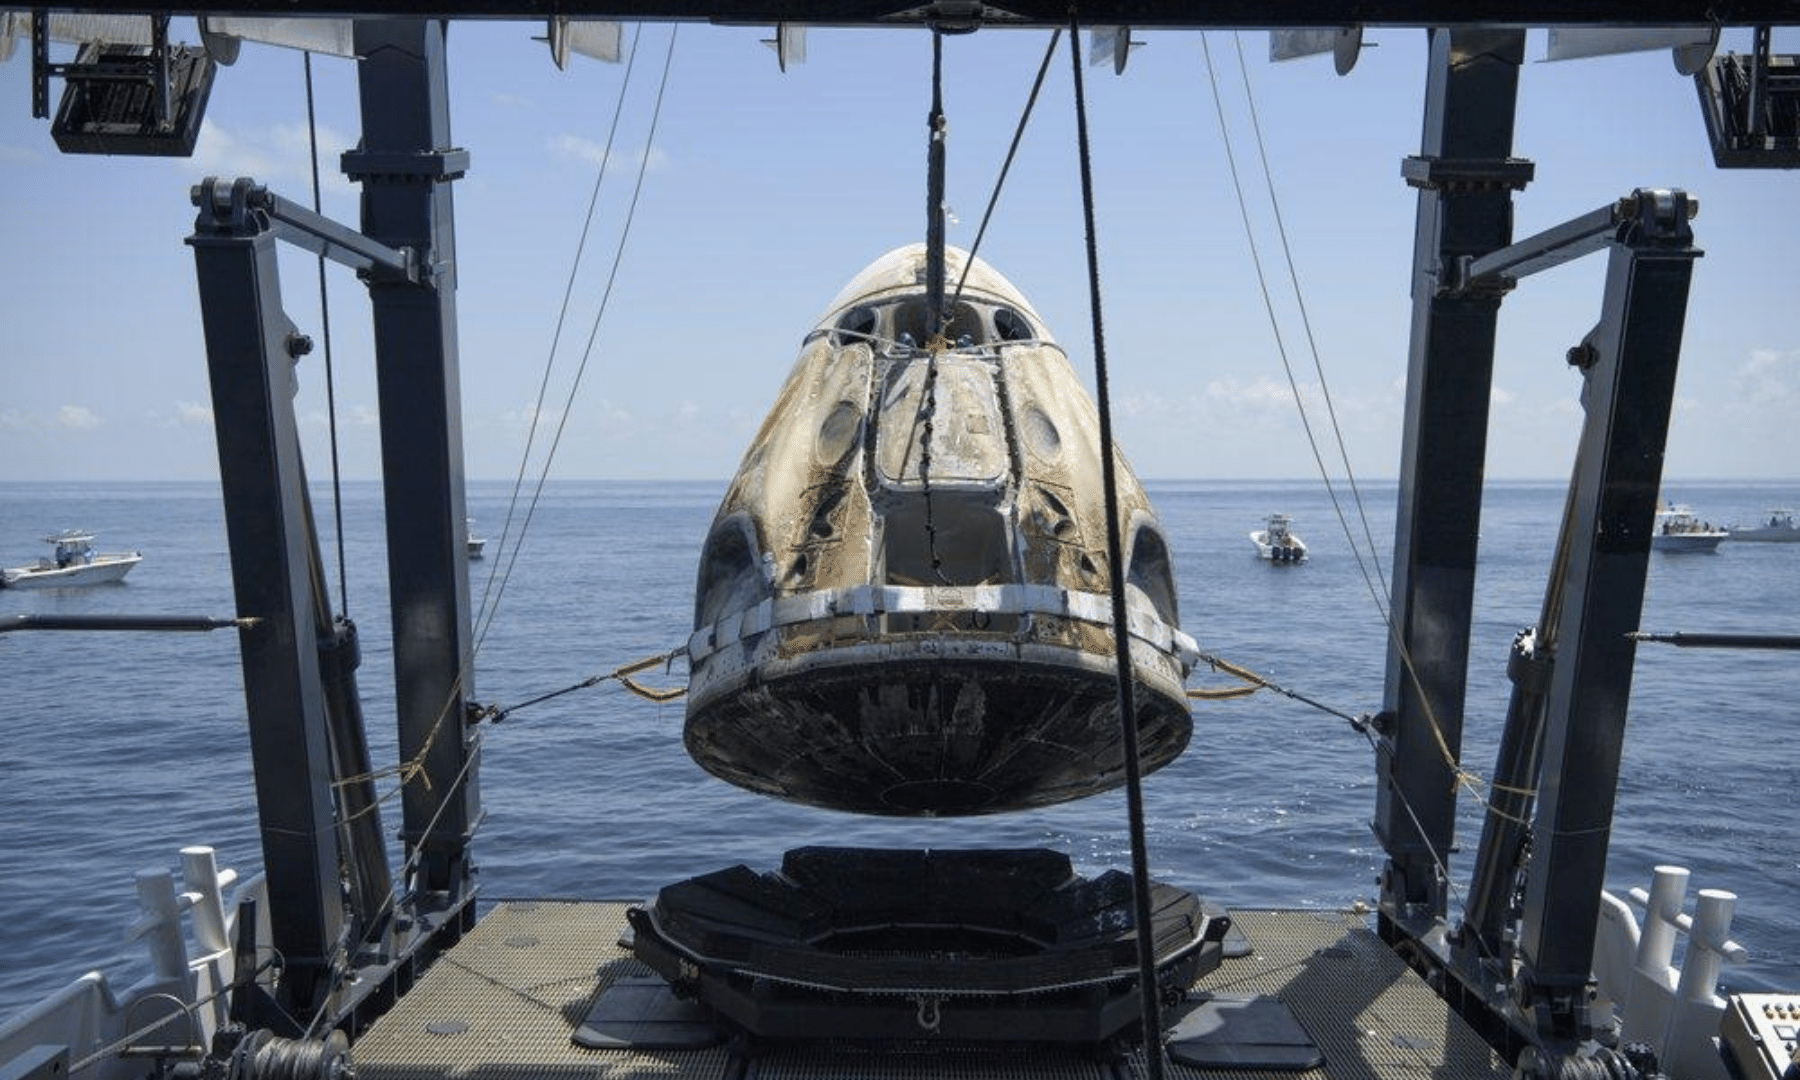 The SpaceX Crew Dragon Endeavour spacecraft is lifted onto the SpaceX GO Navigator recovery ship shortly after it landed. — AP